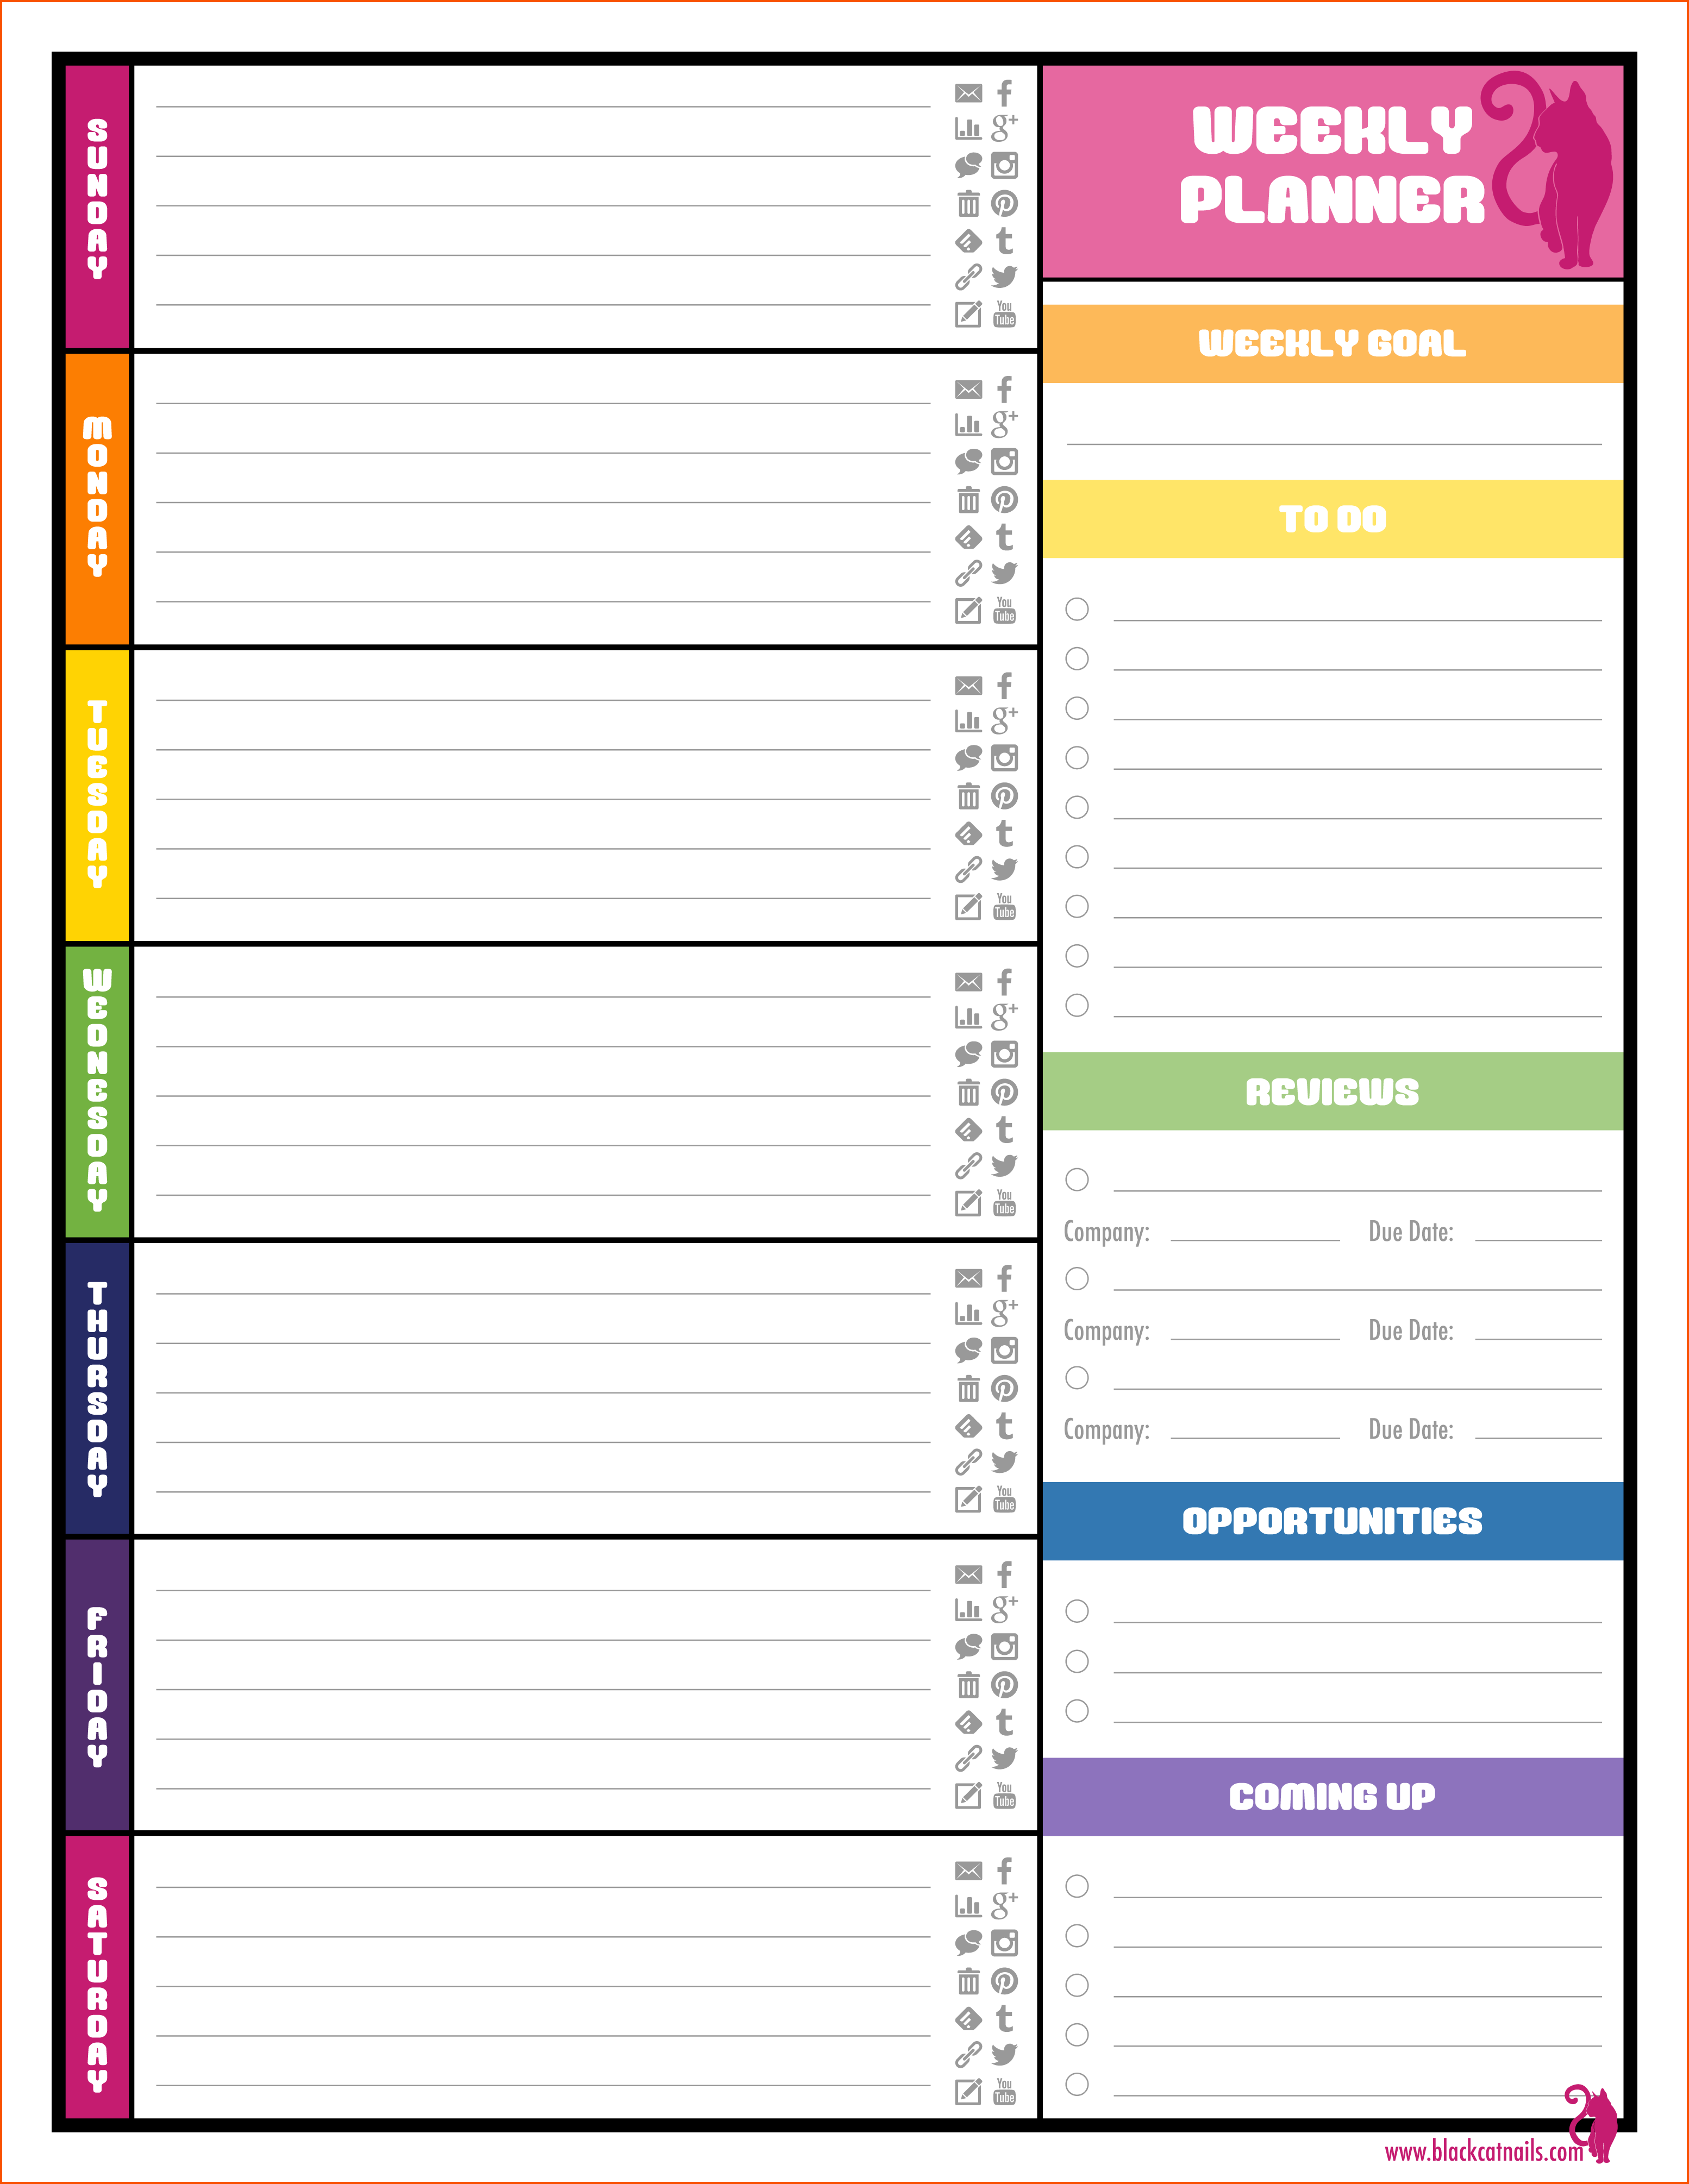 weekly planner download